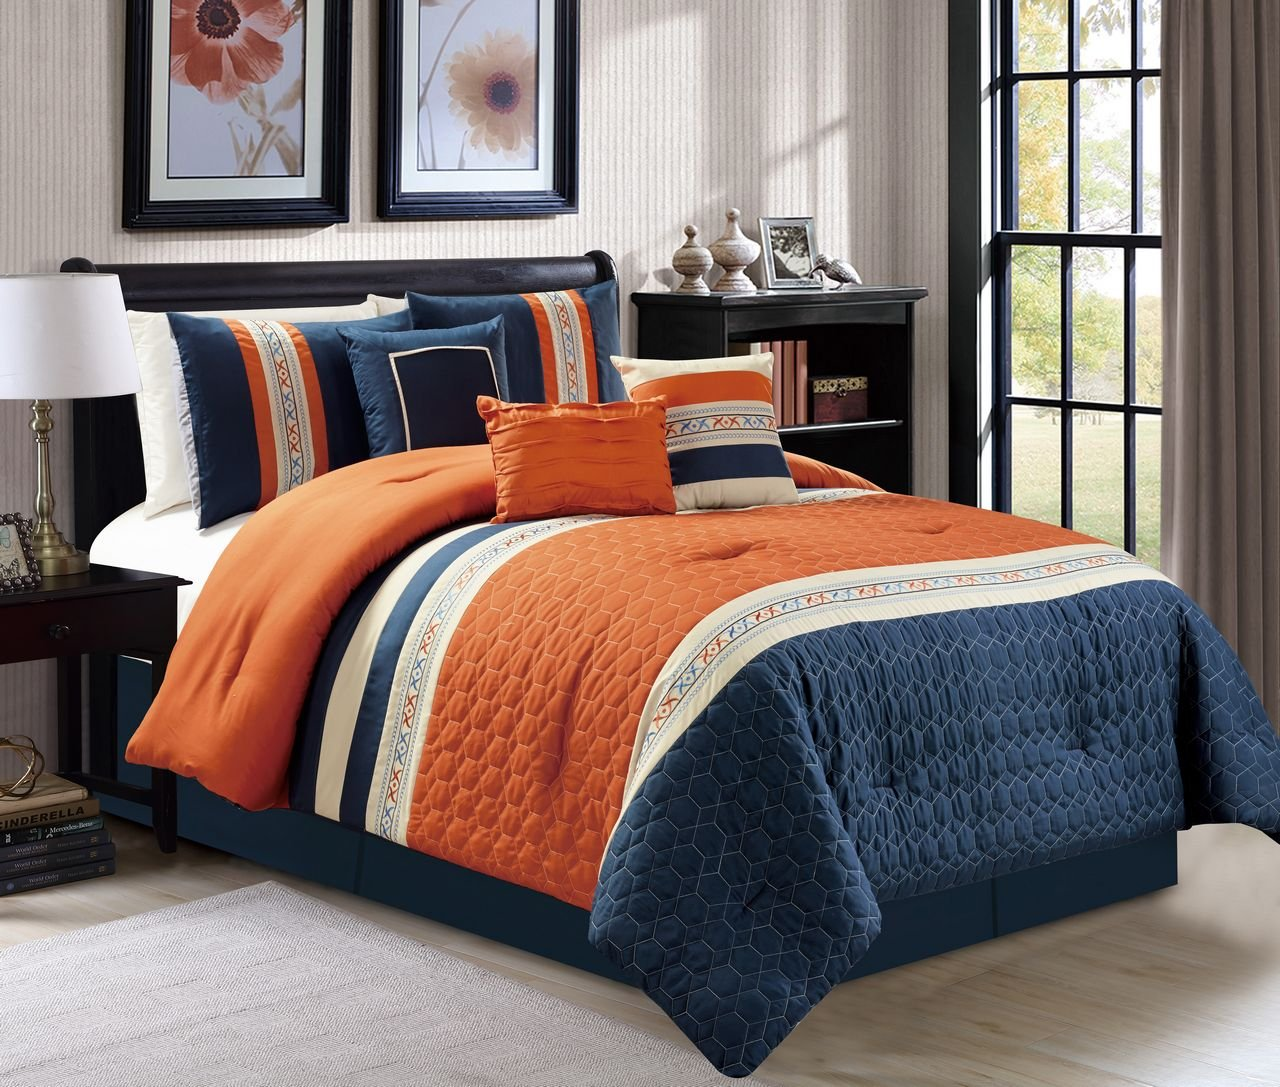 Schlafzimmer Orange Set : New pc cal king size honeycomb quilted orange navy ivory